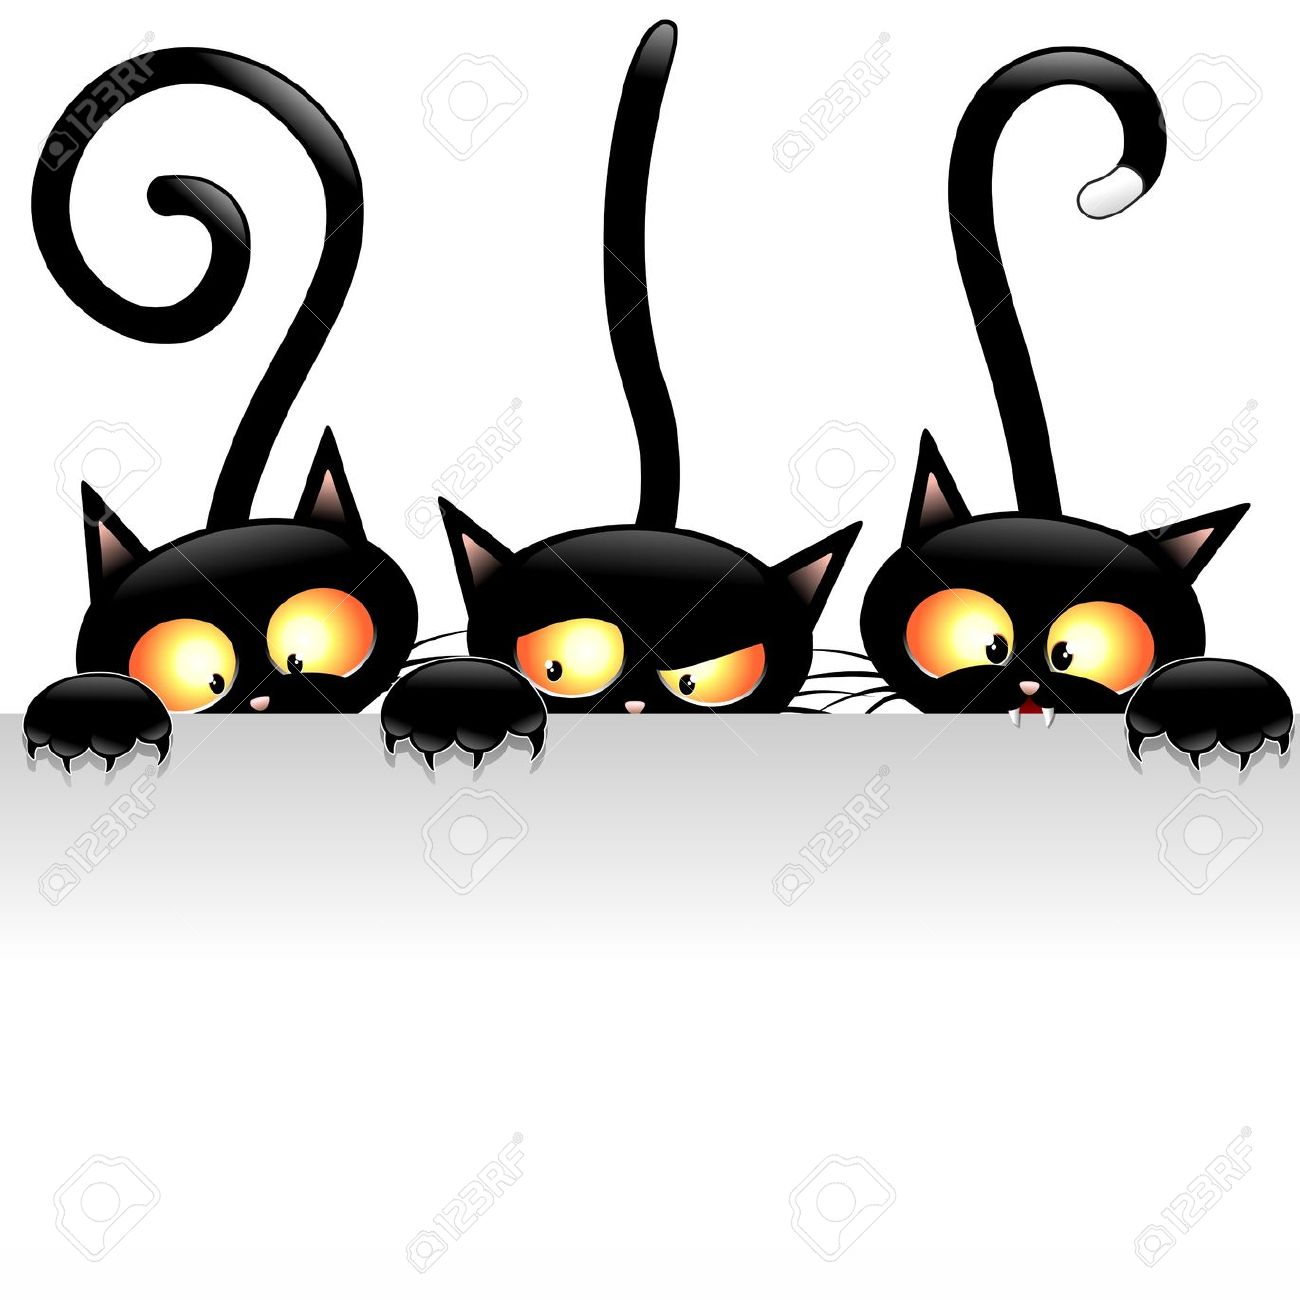 33,509 Funny Cat Stock Vector Illustration And Royalty Free Funny.